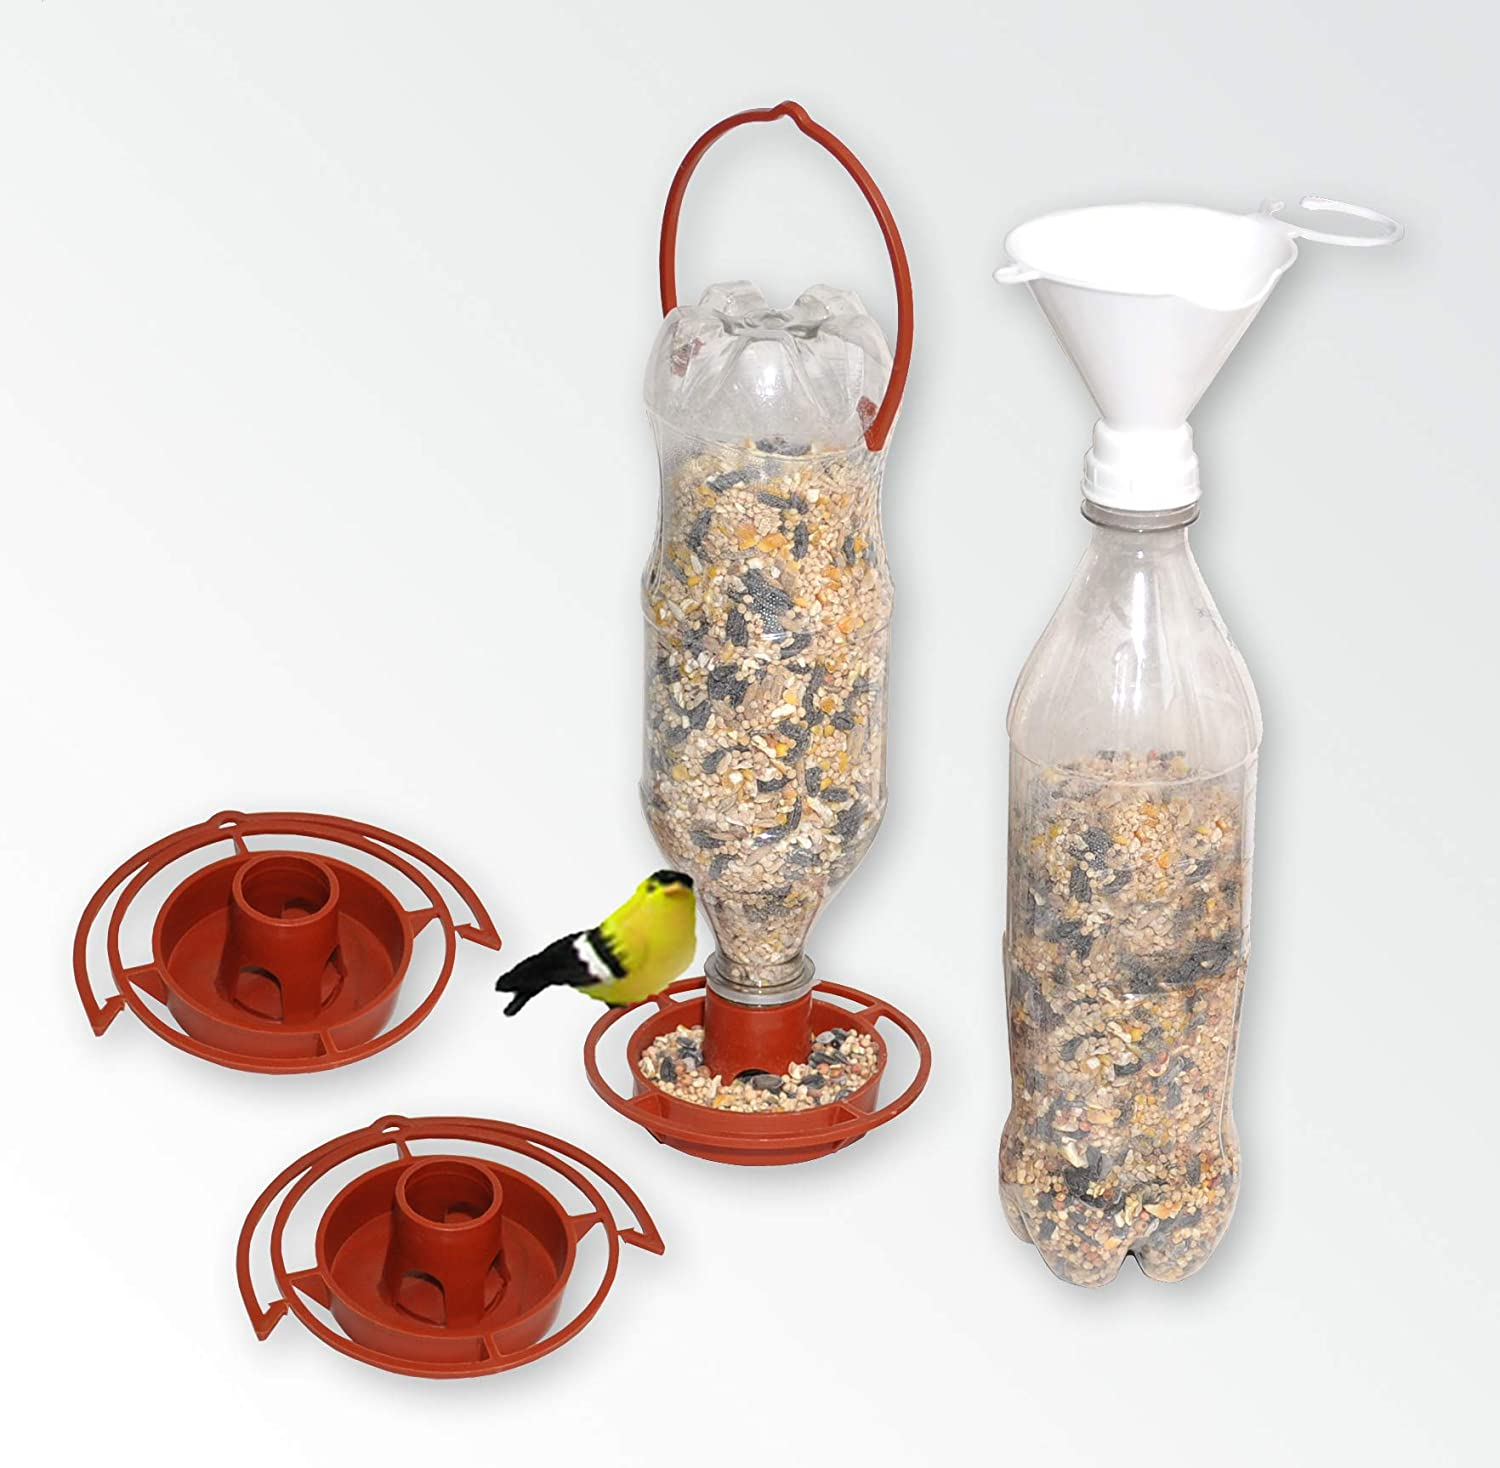 Gadjit 3 Hanging Wild Bird Feeder Kits & Twist-on Bird Seed Filling Funnel | Fun Inexpensive Project for Kids at Home | Promotes Plastic Bottle Re-use Pack of 3 (Terra Cotta)